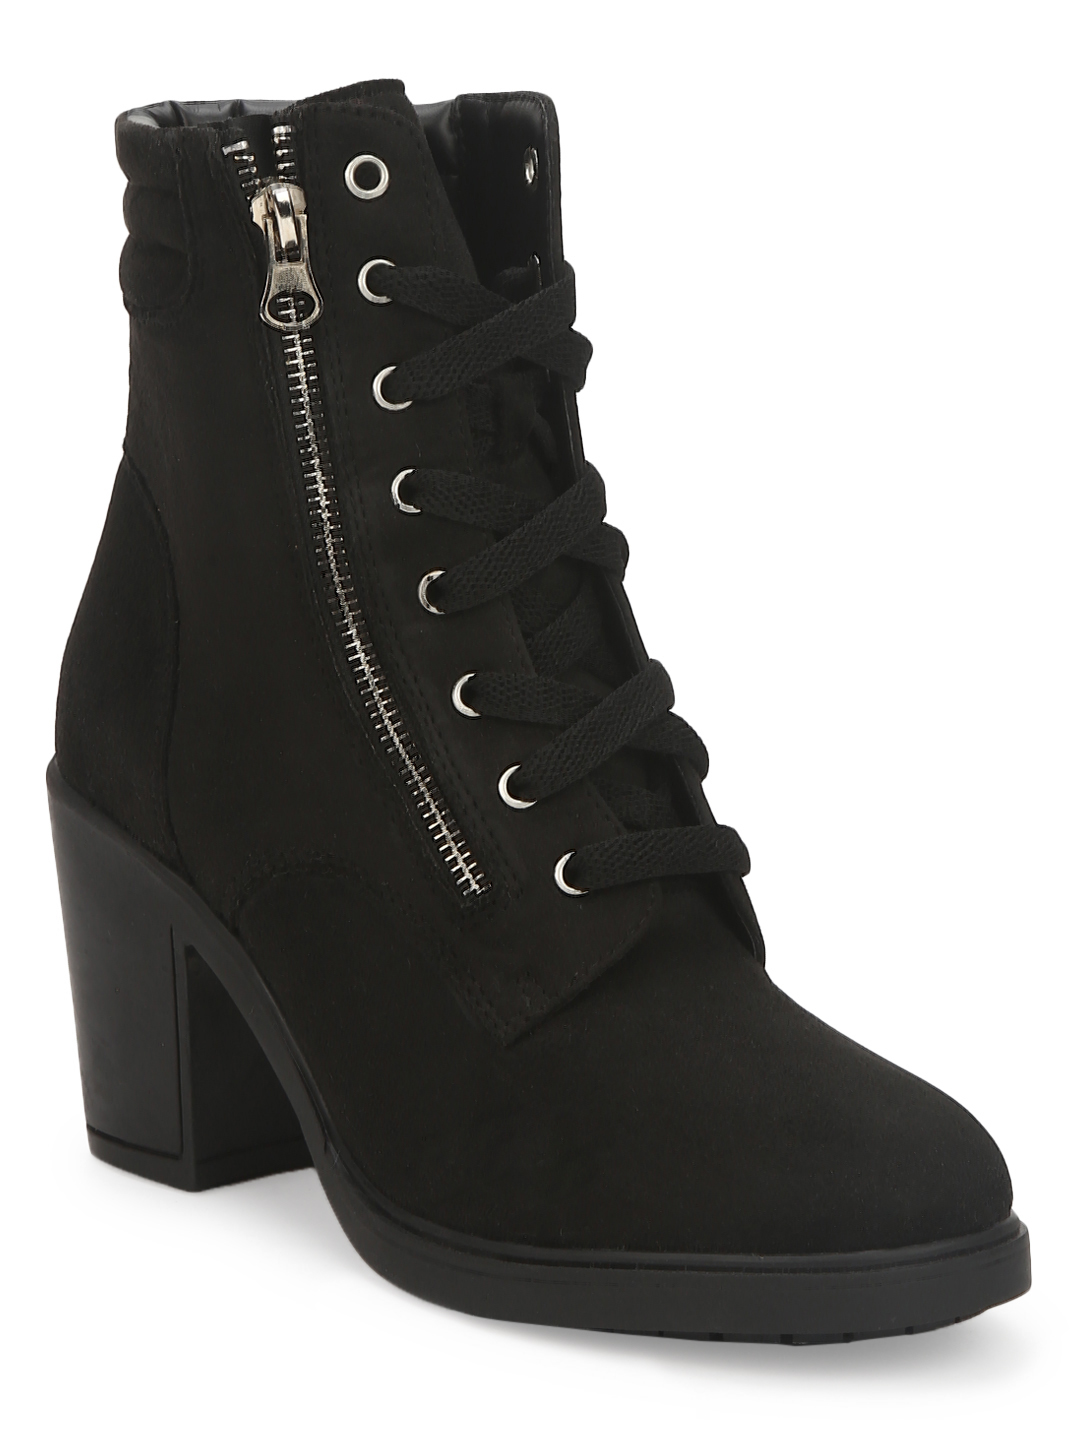 Truffle Collection | Black Suede Lace Up Block Heel Ankle Boots